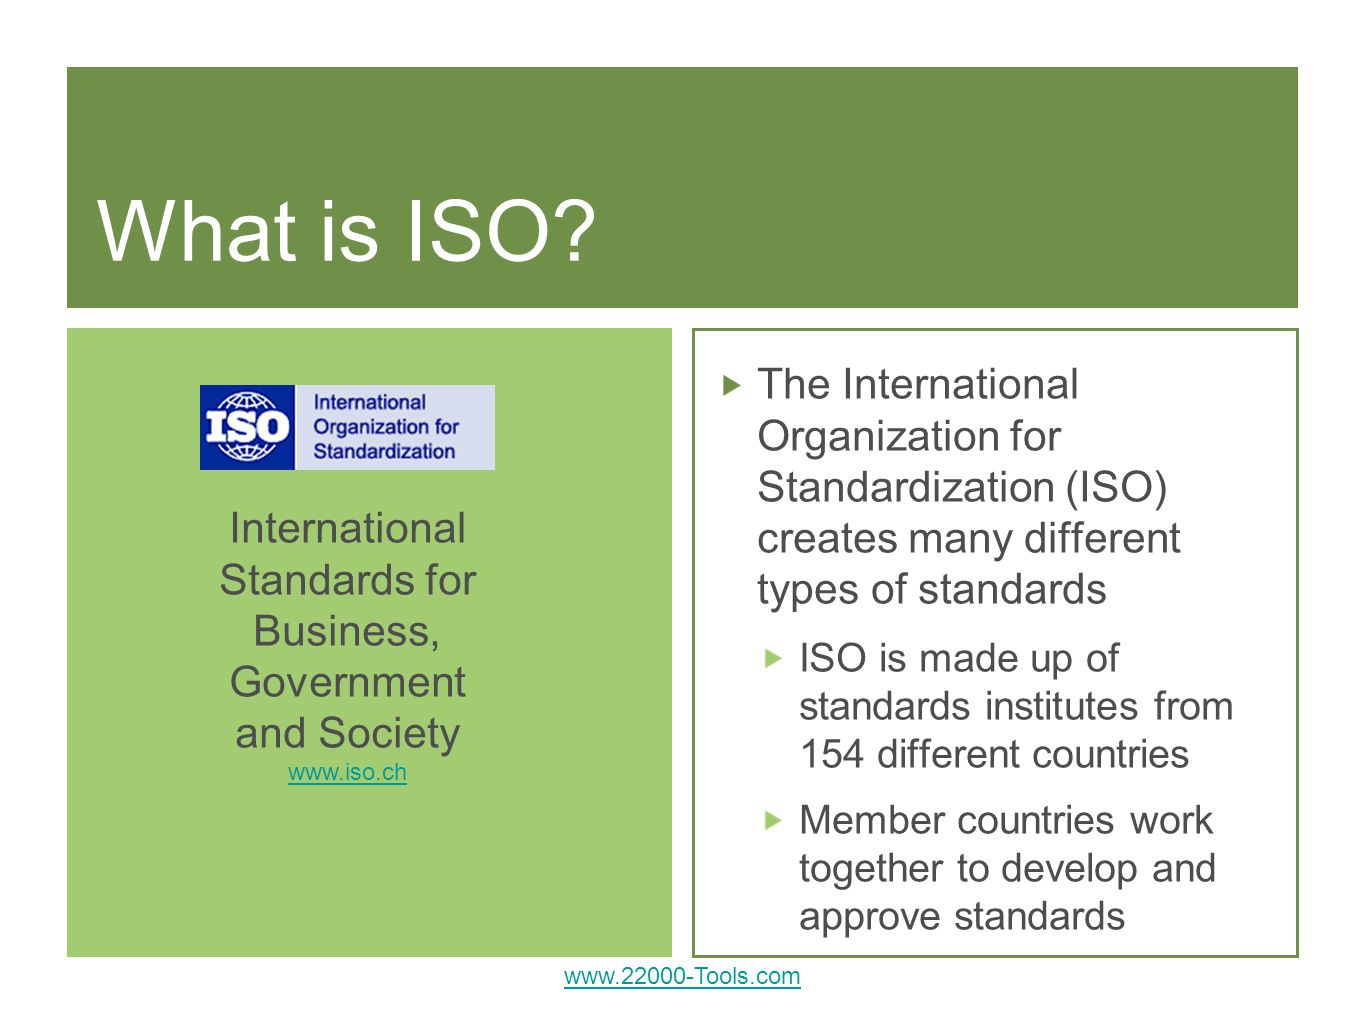 International Standards for Business, Government and Society